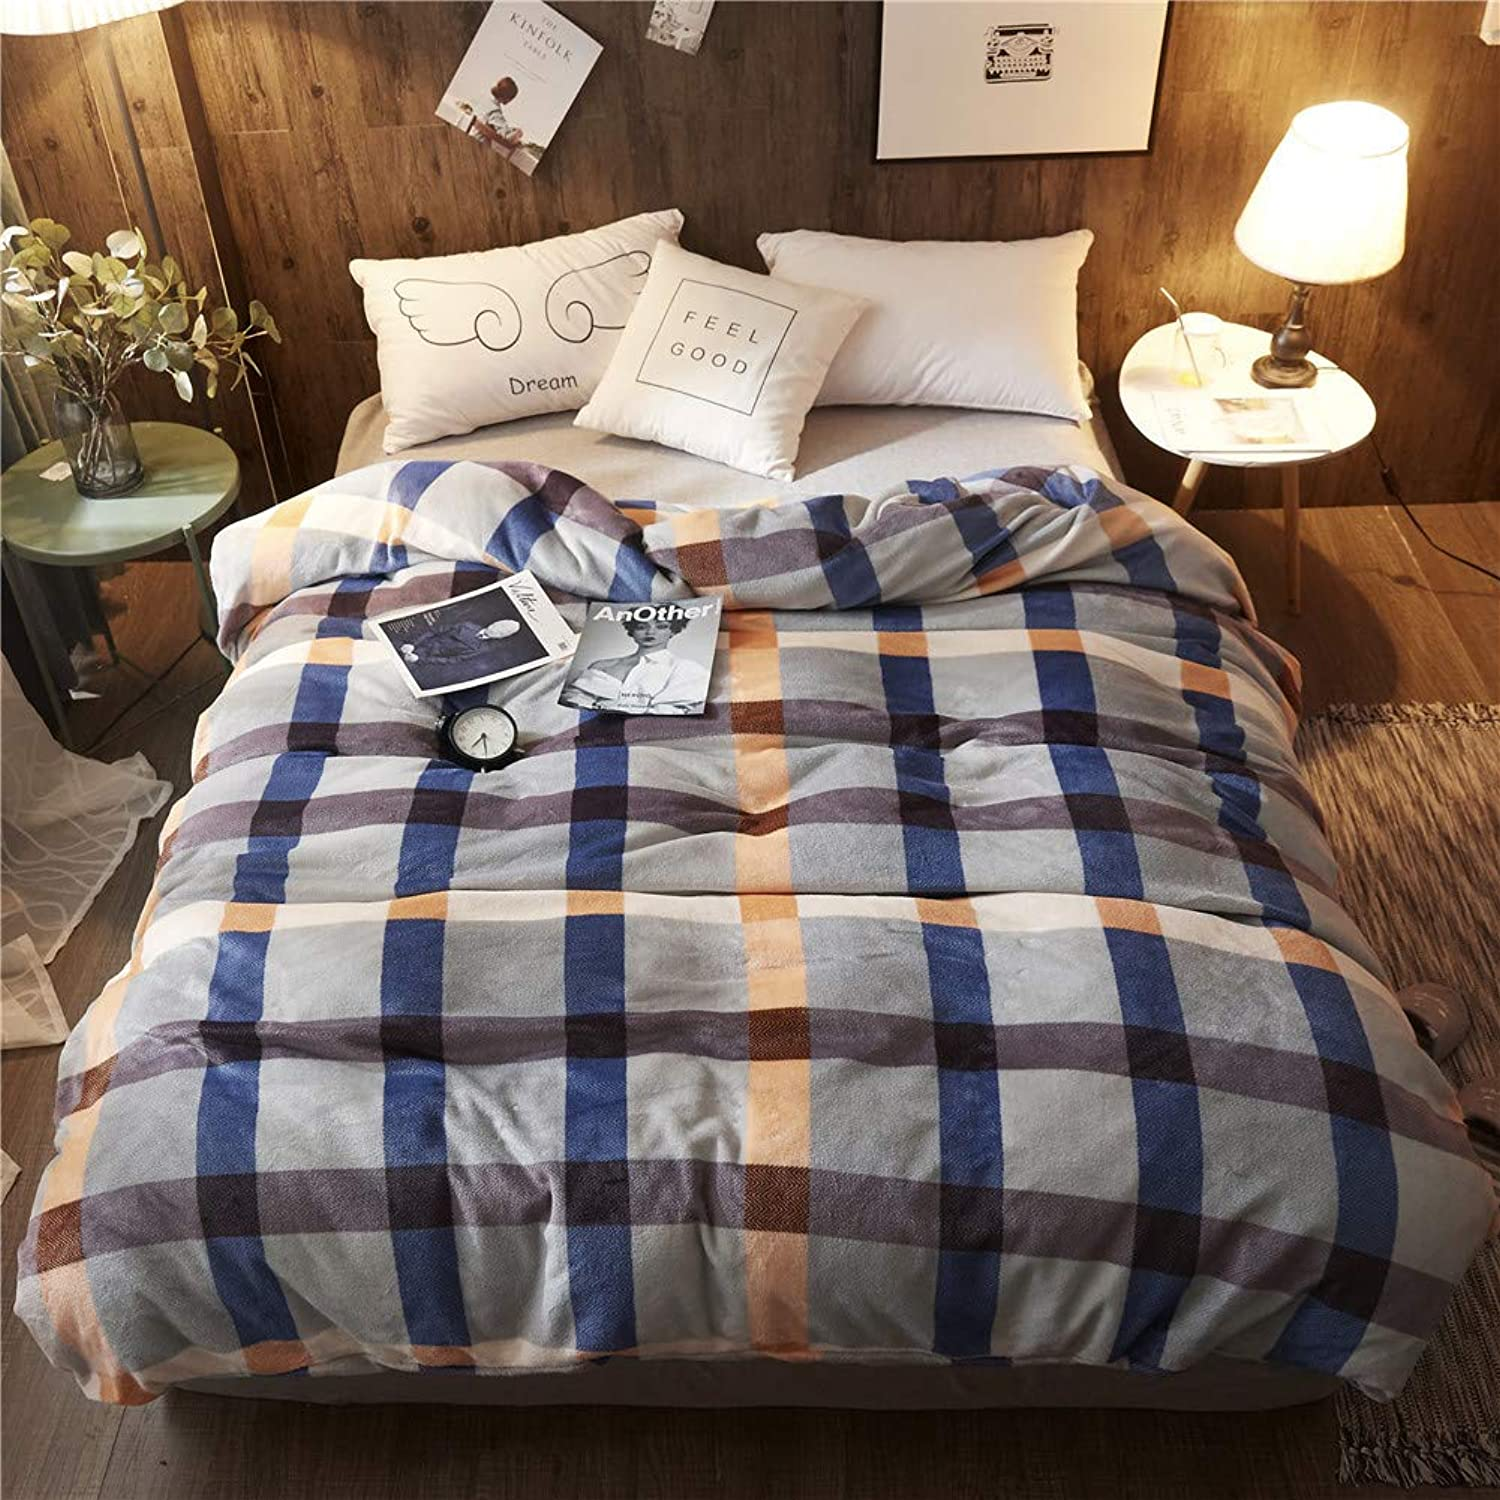 LIYAXUN Thickening and Warmth Retention Simplicity Hypoallergenic Soft Breathable Flannel Duvet Cover79  x 91 (200 x 230cm),Nordic Lattice